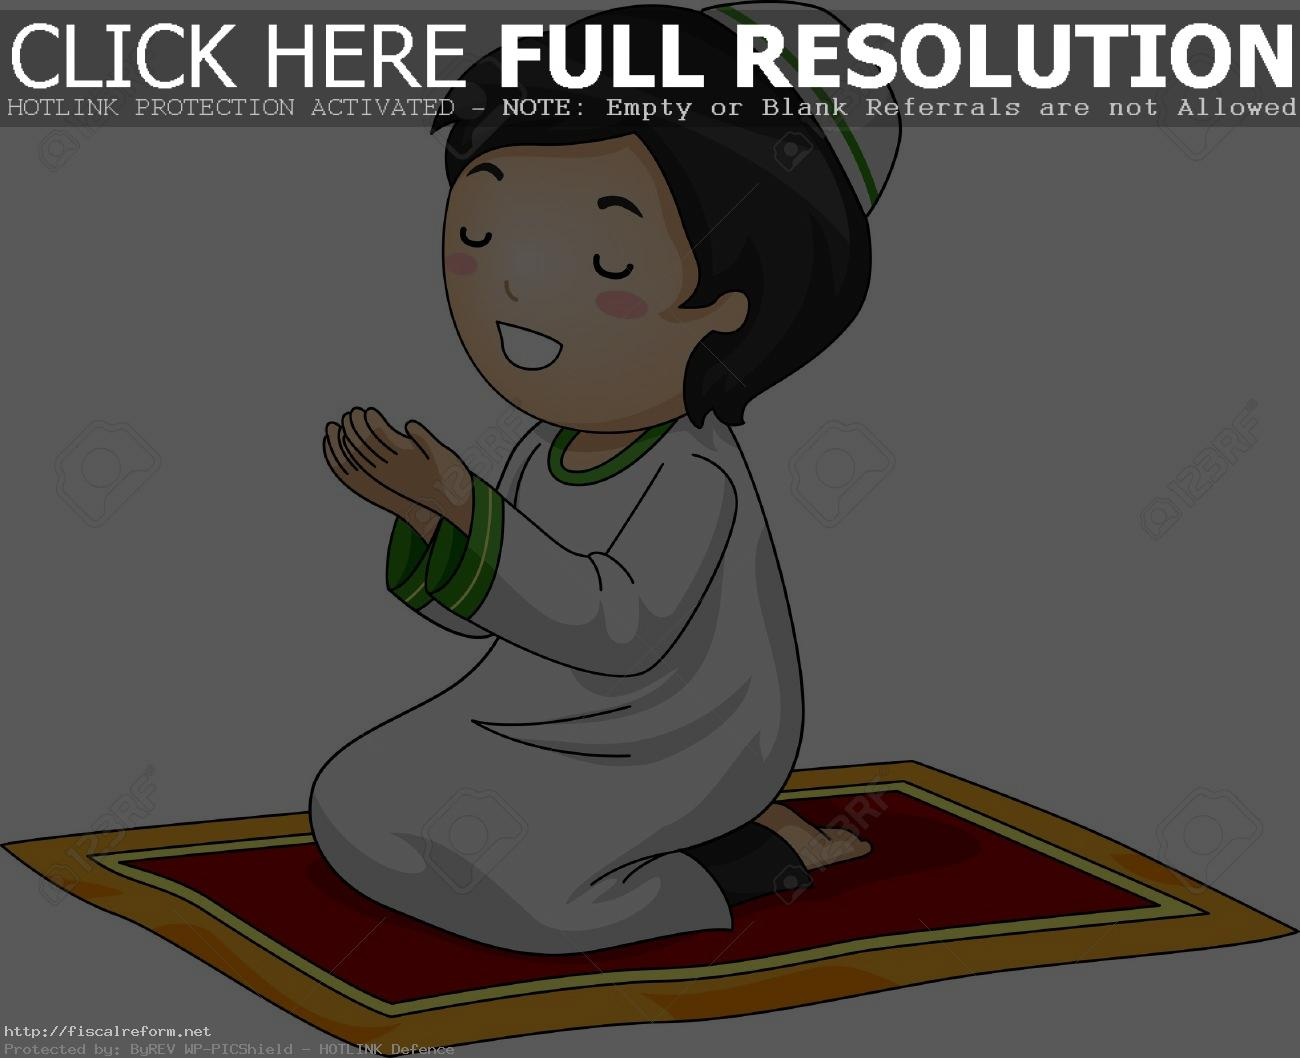 Muslim Boy Praying Png - ... Illustration Of A Little Muslim Boy Kneeling In Prayer Stock Photo  Throughout Praying ...